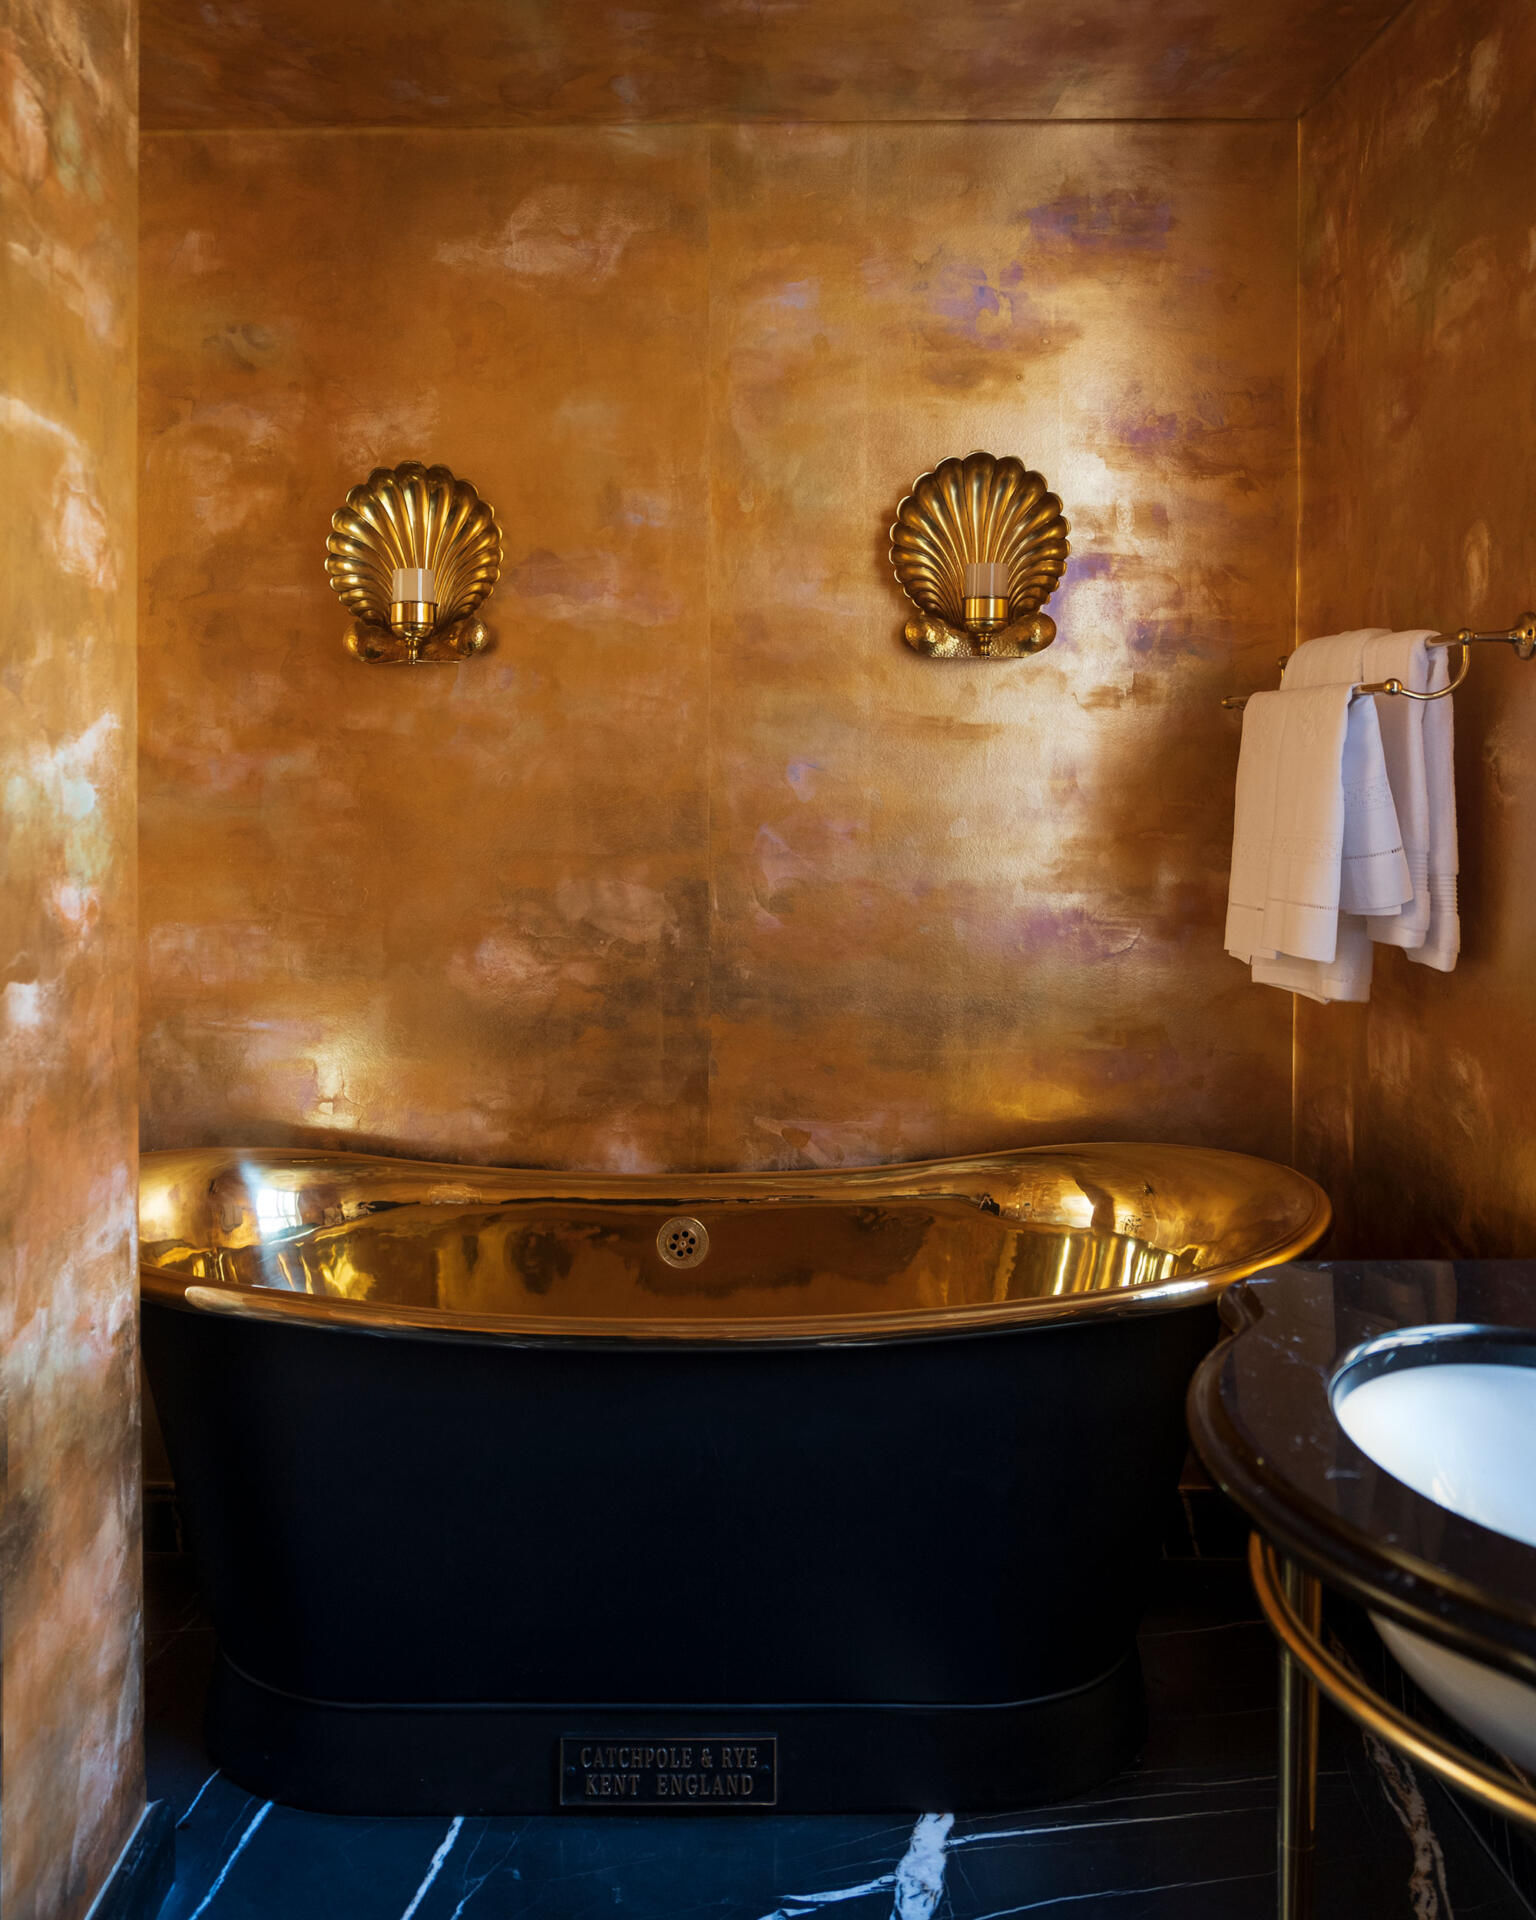 """Collier Webb Clandon Lights with """"Rich Gold"""" gilded paper and Catchpole & Rye bath"""